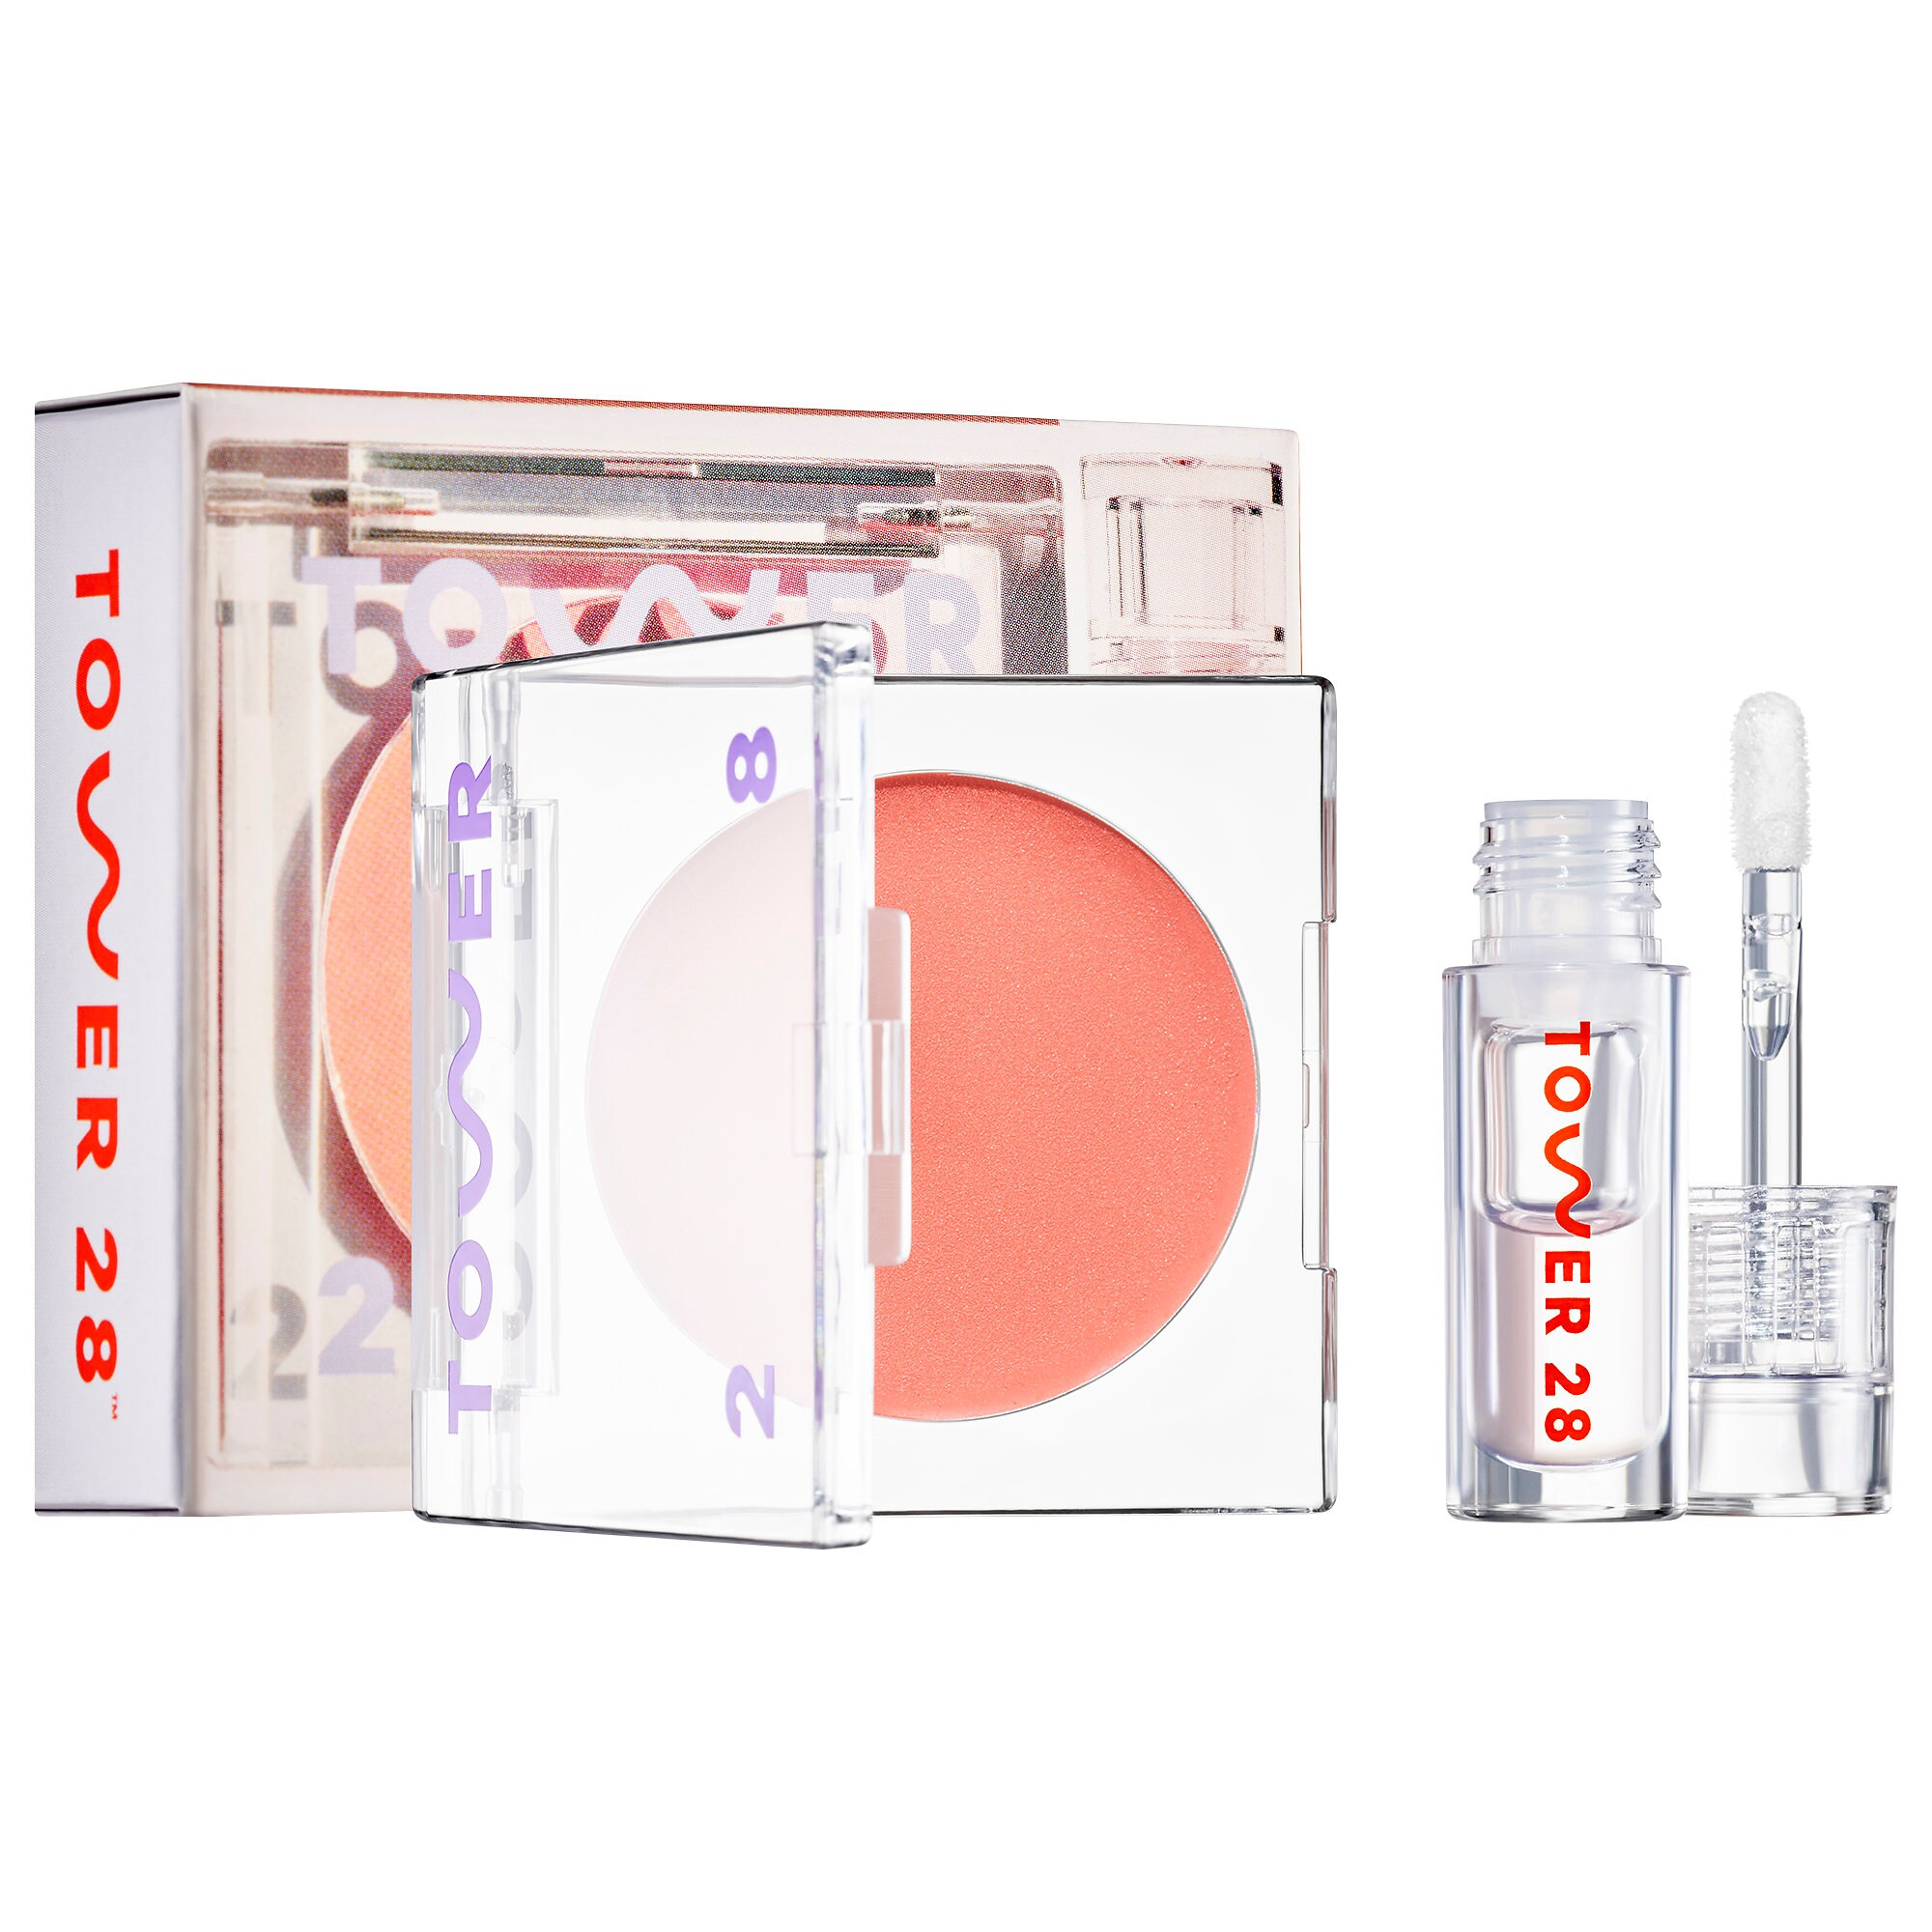 Tower28 - Magic Hour and Chill Lip + Cheek Balm and Gloss Duo Set